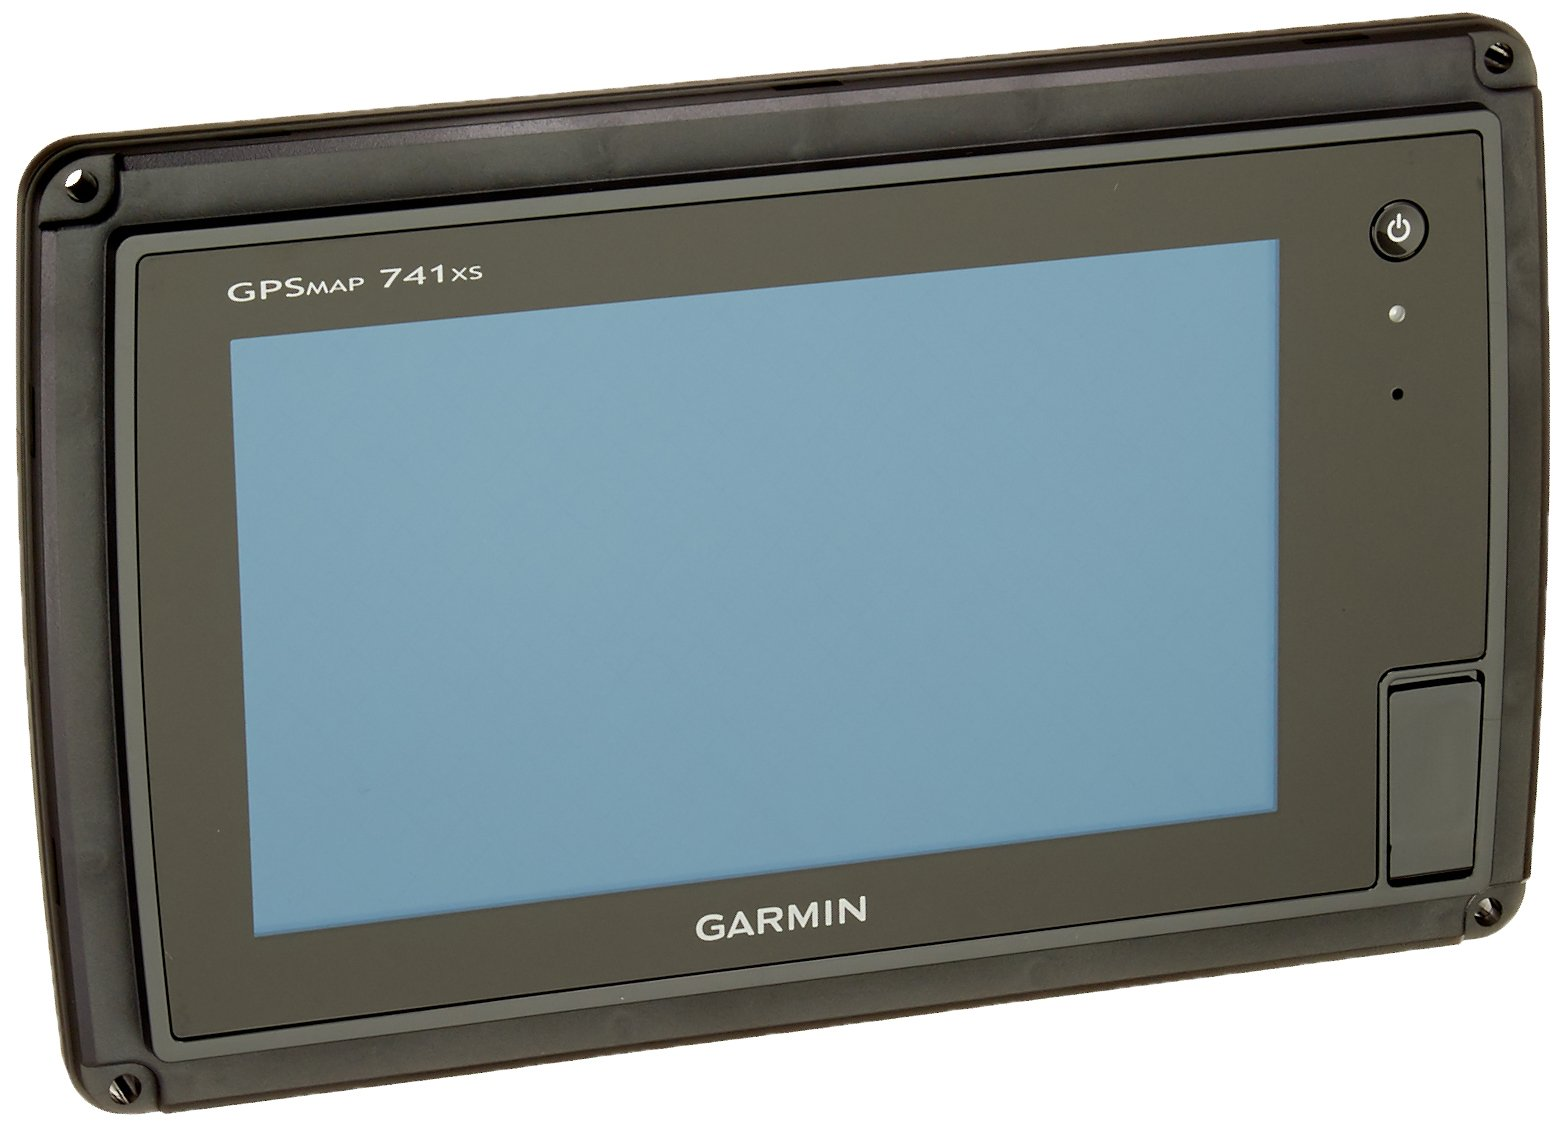 Garmin GPSMAP 741xs without Transducer Includes Worldwide Base by Garmin